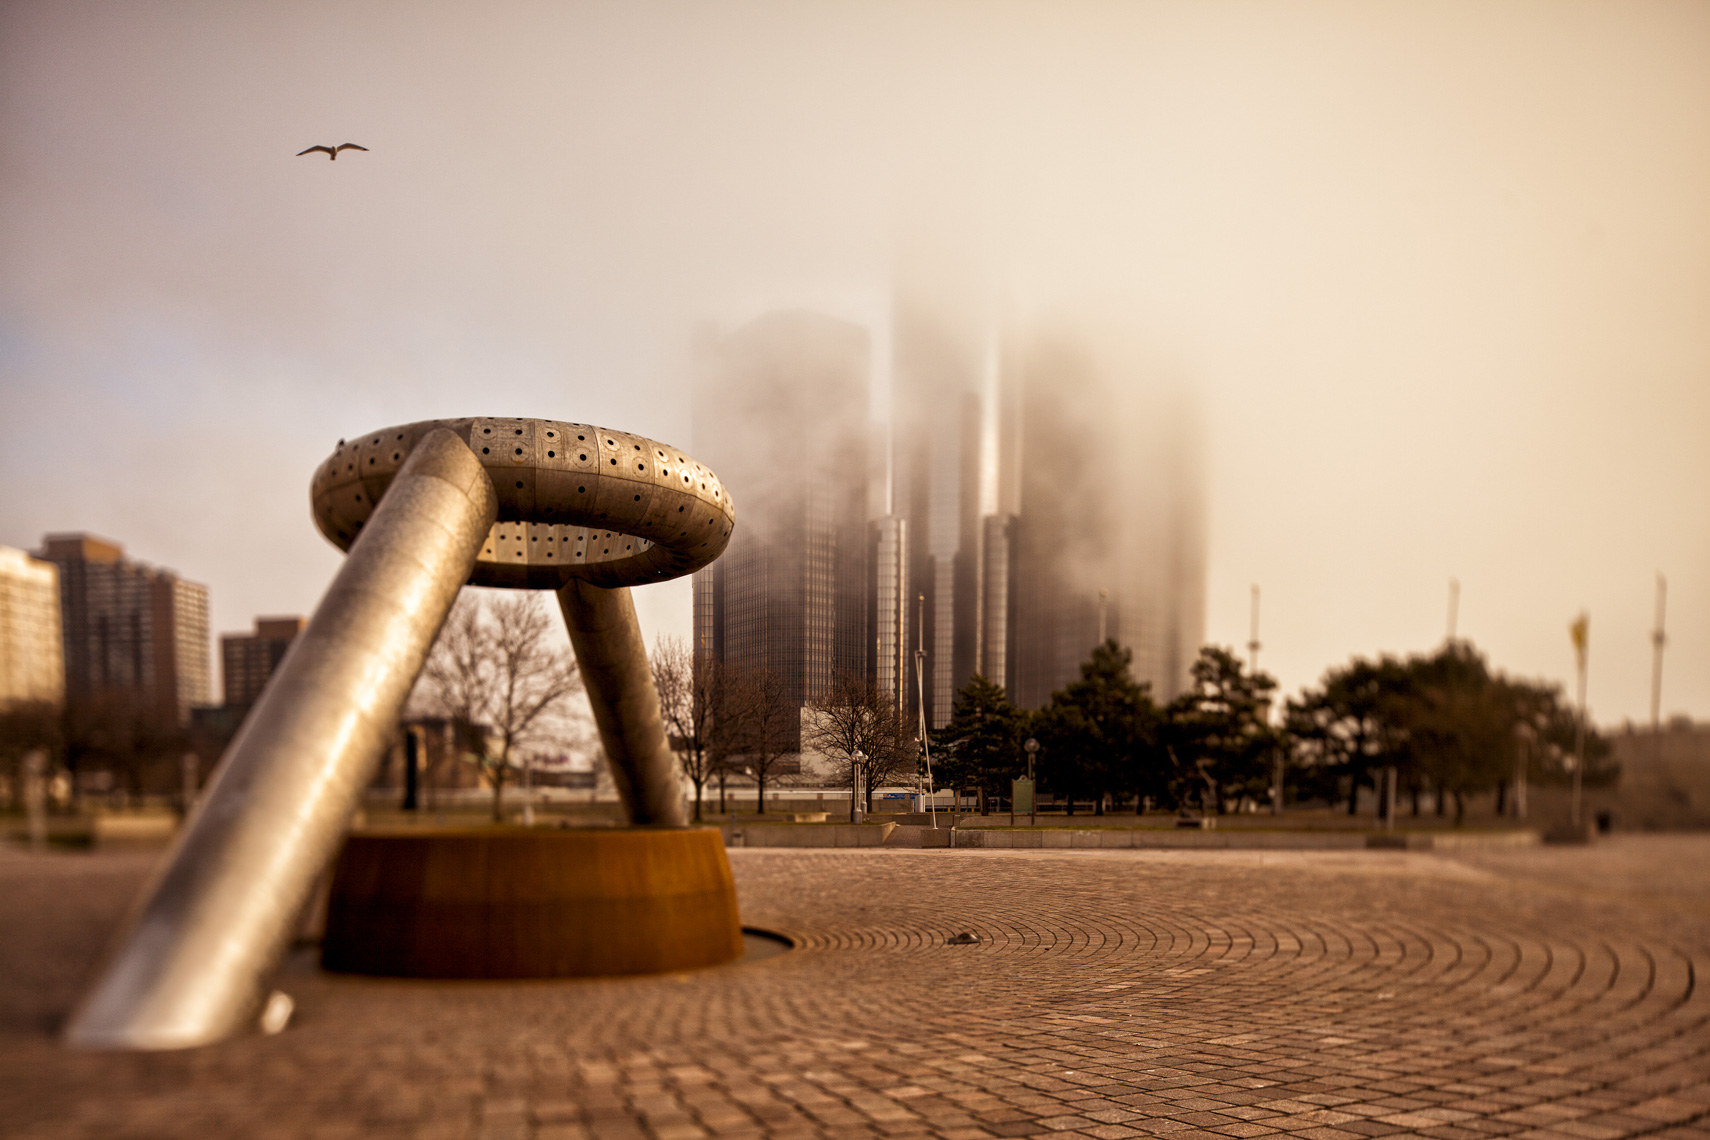 detroit_fog-7742-Edit.jpg